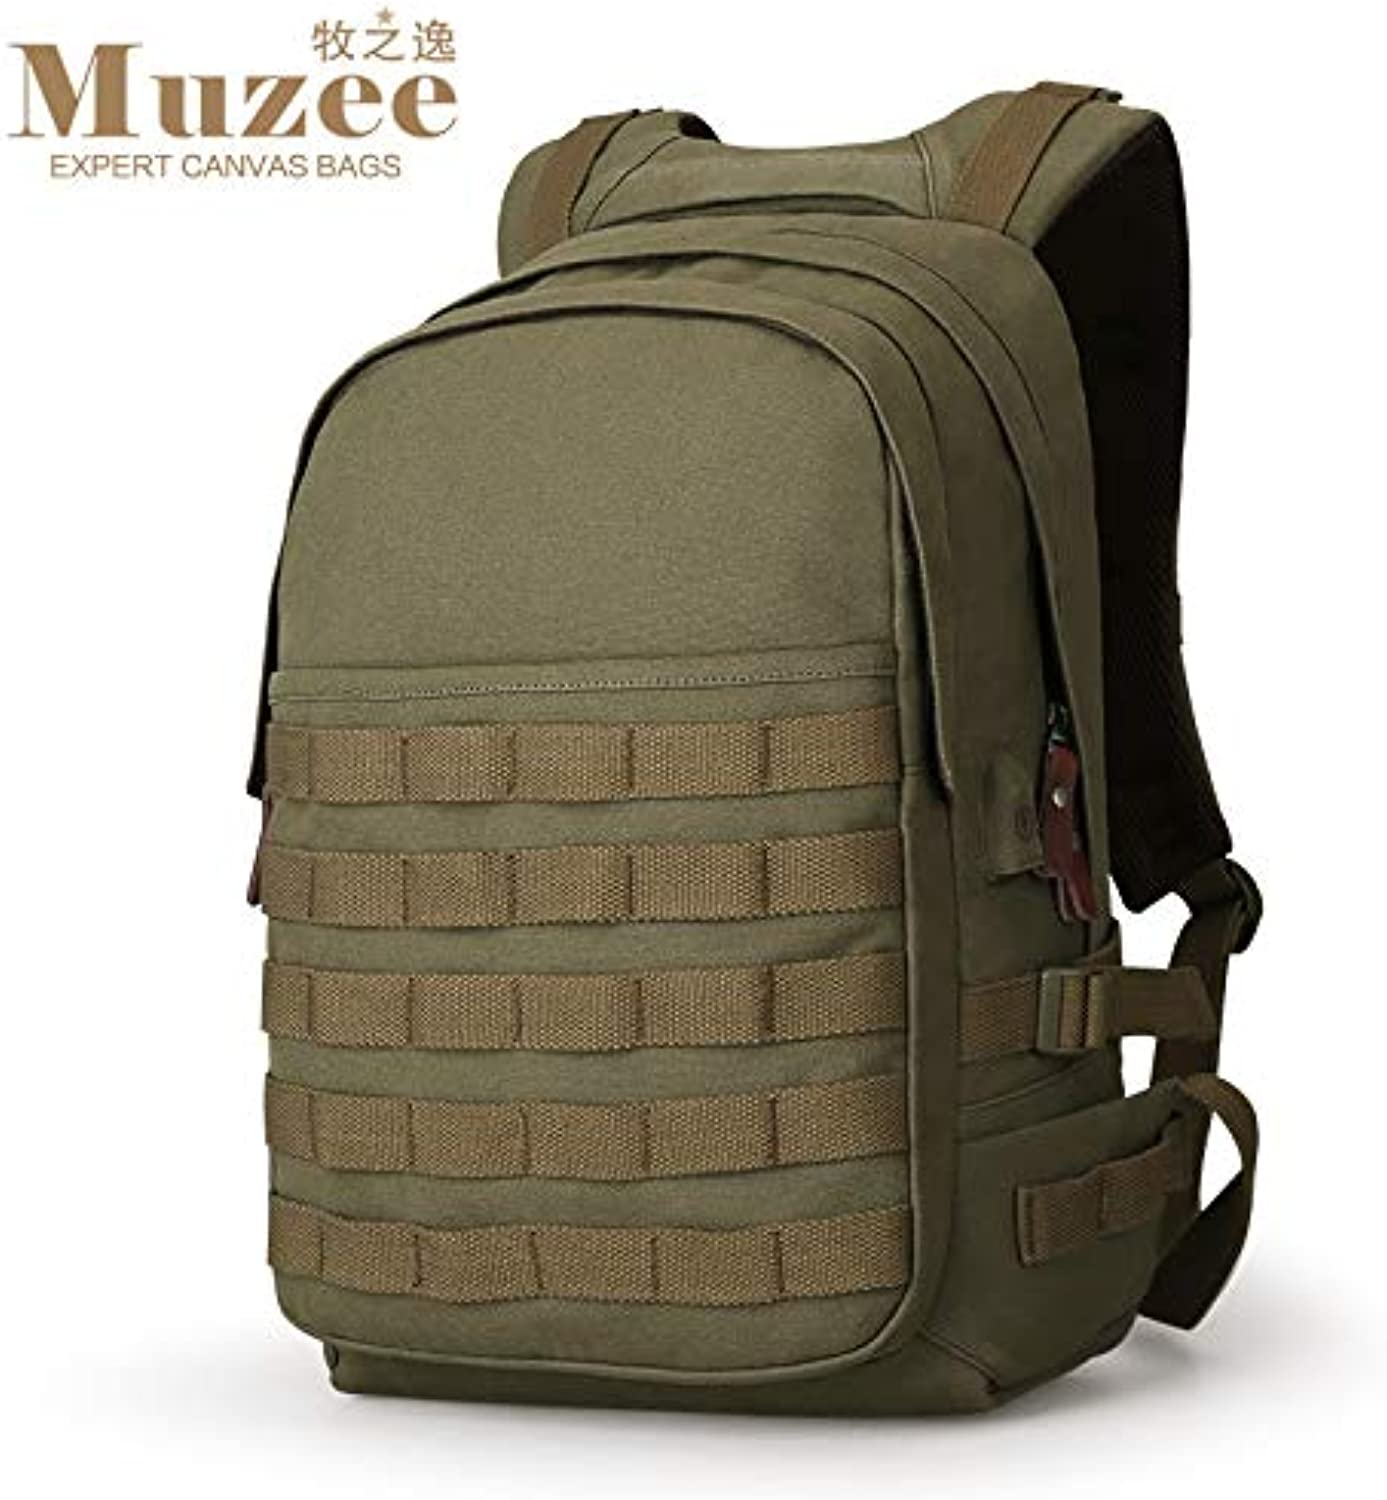 Schoolbag Fsweeth The backpack men doubleshoulder bag canvas casual stylish all,45  30  16cm, field green bags.